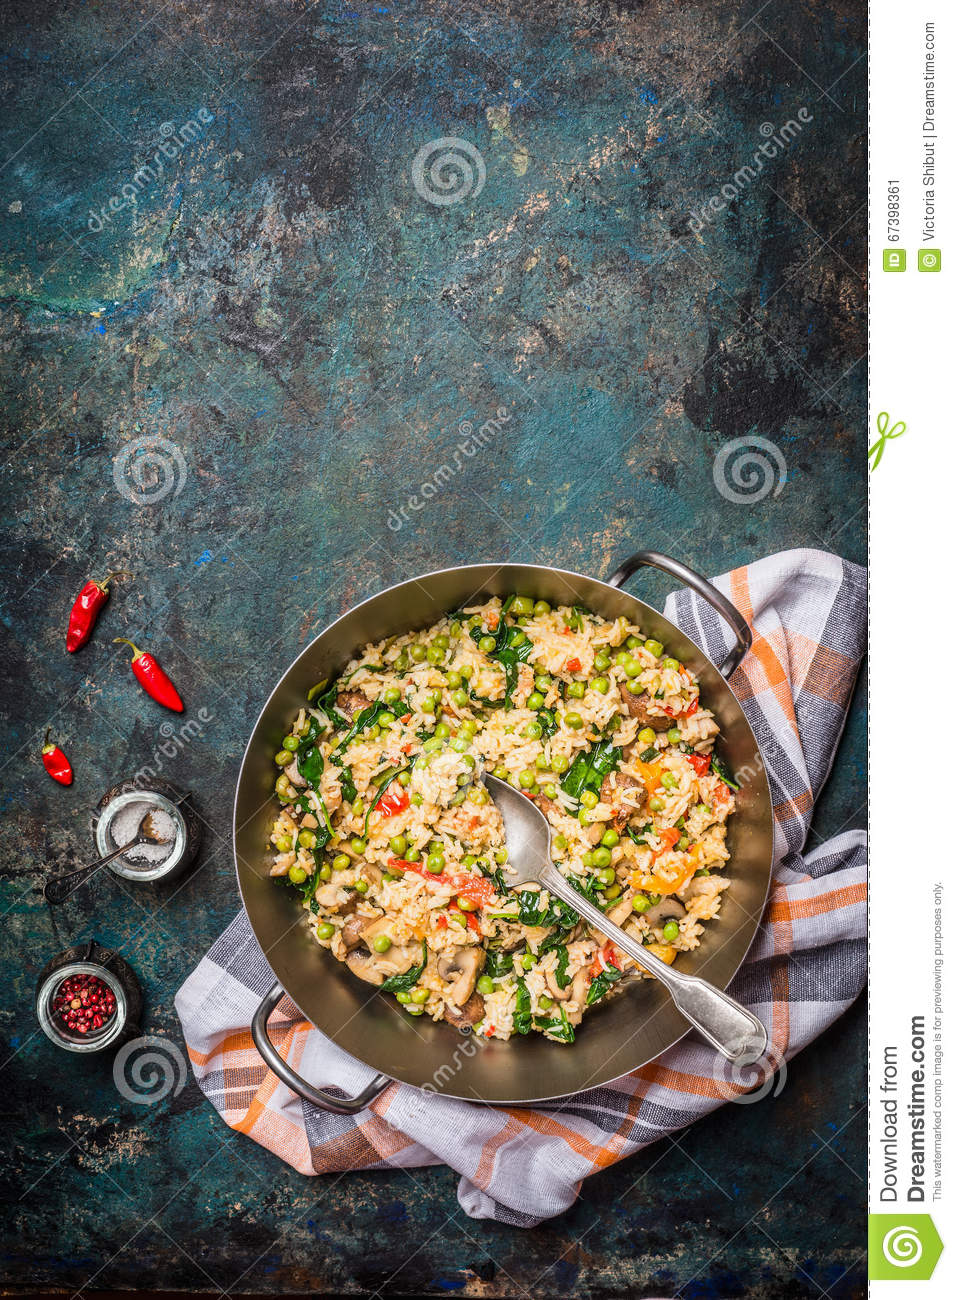 Vegetarian food background with rice vegetables dish and spices, top view